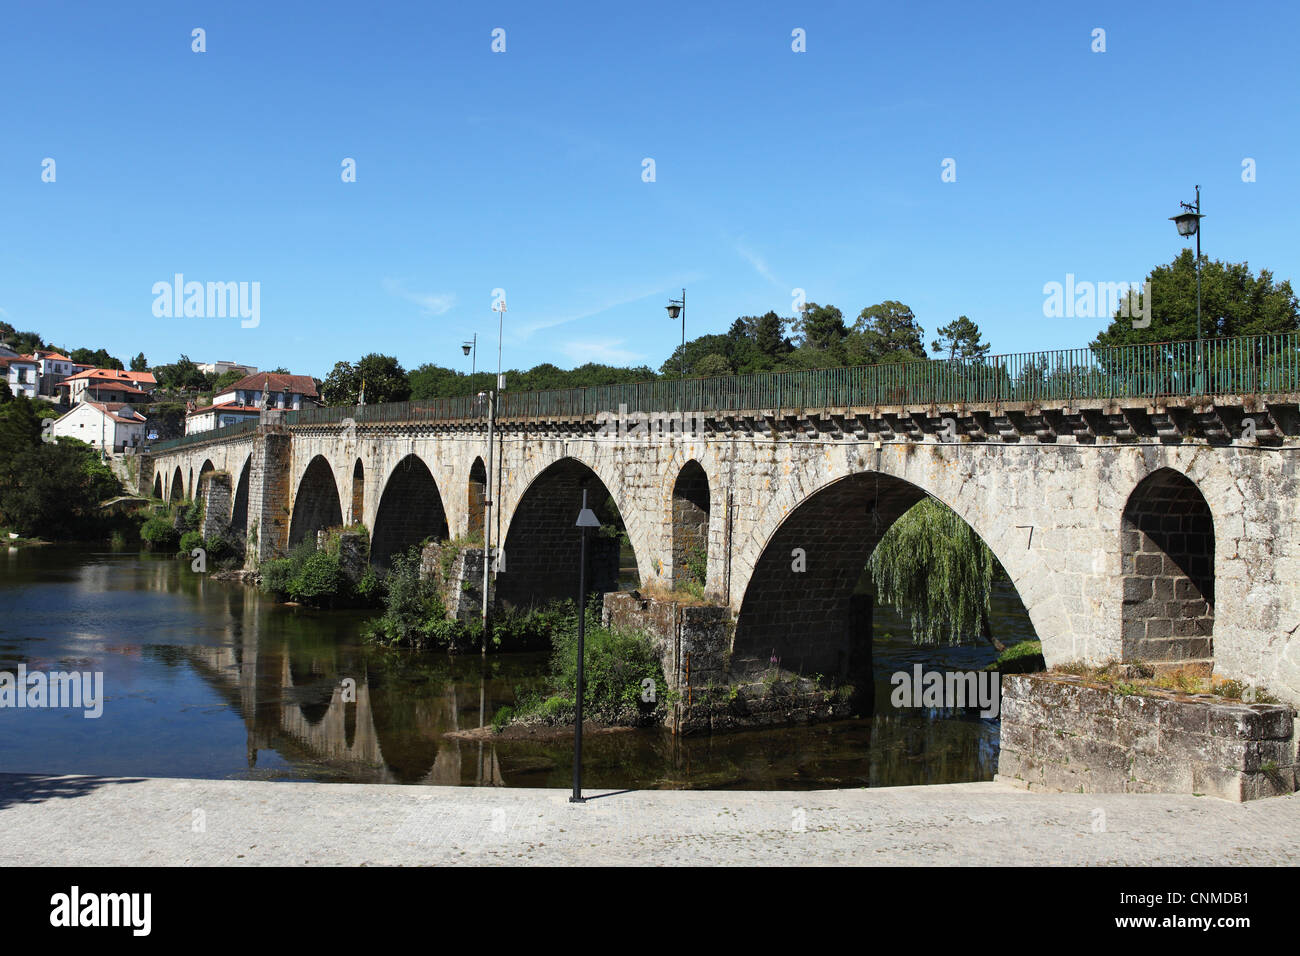 The medieval arched stone bridge across the River Lima at the town of Ponte da Barca, Minho, Portugal, Europe - Stock Image